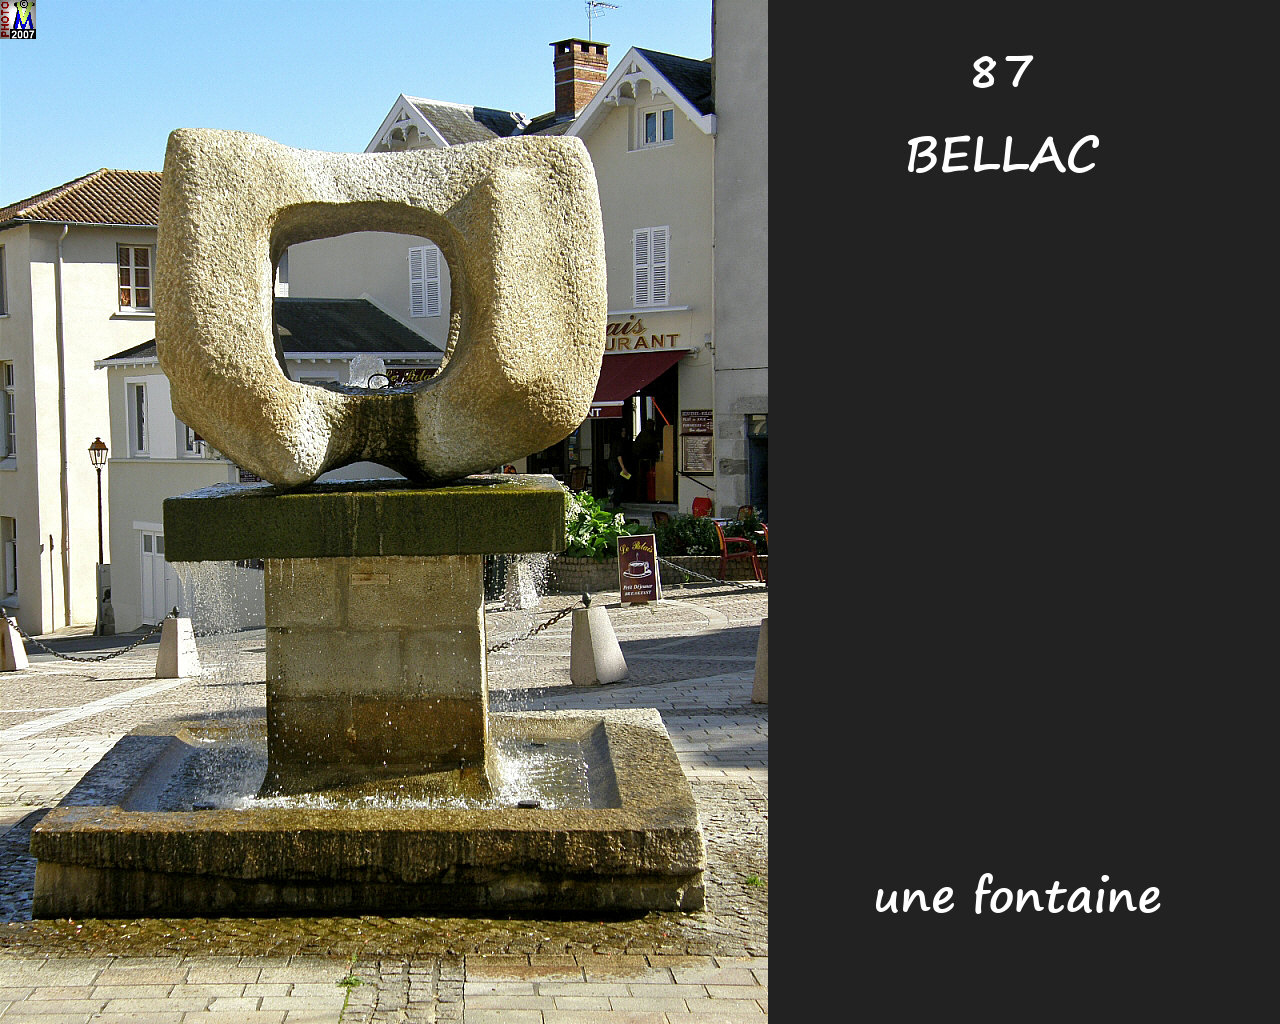 87BELLAC_fontaine_110.jpg